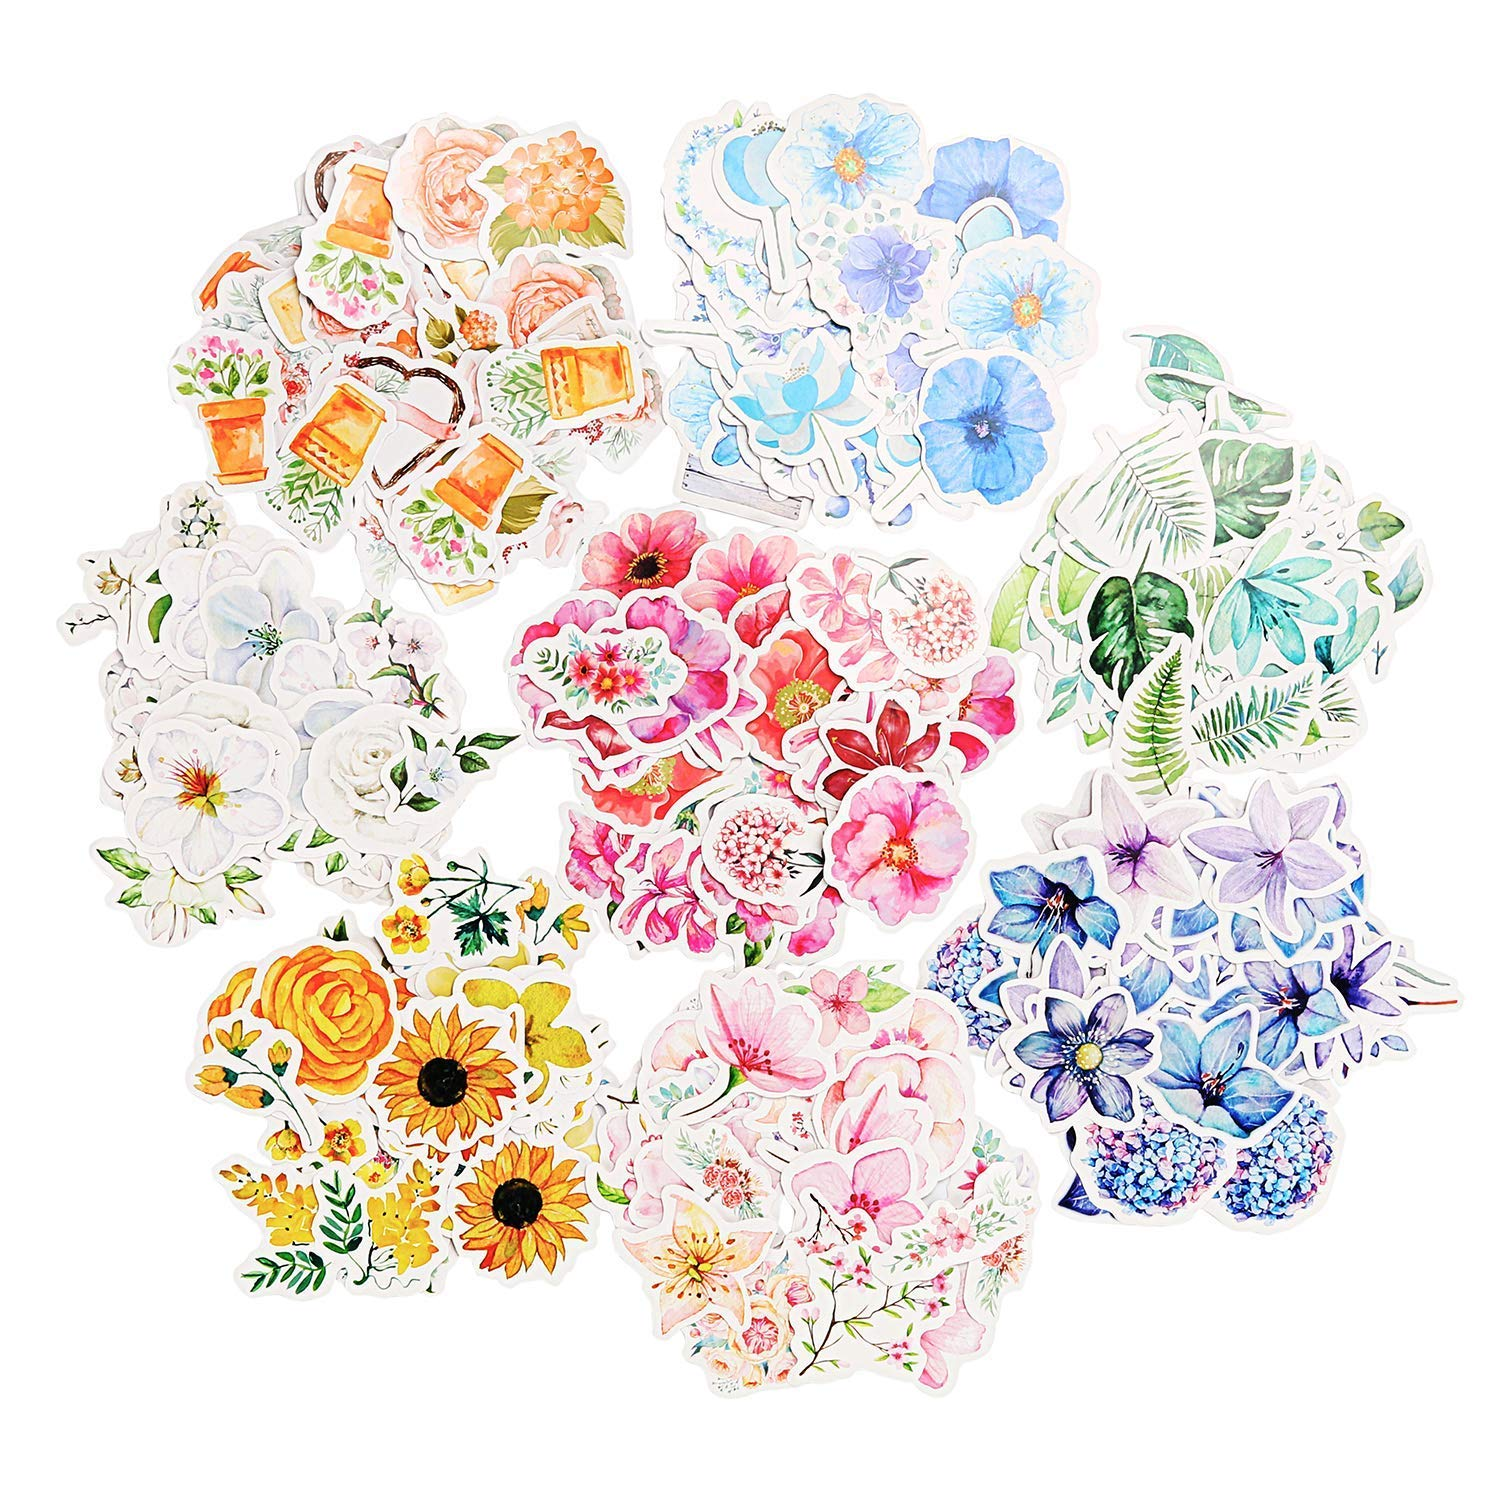 Molshine 360pcs Various Special Shaped Stickers-Flower Series Decals for Personalize Decoration,Laptops,Skateboards,Luggage,Cars,Bumpers,Bikes,Bicycles,Books